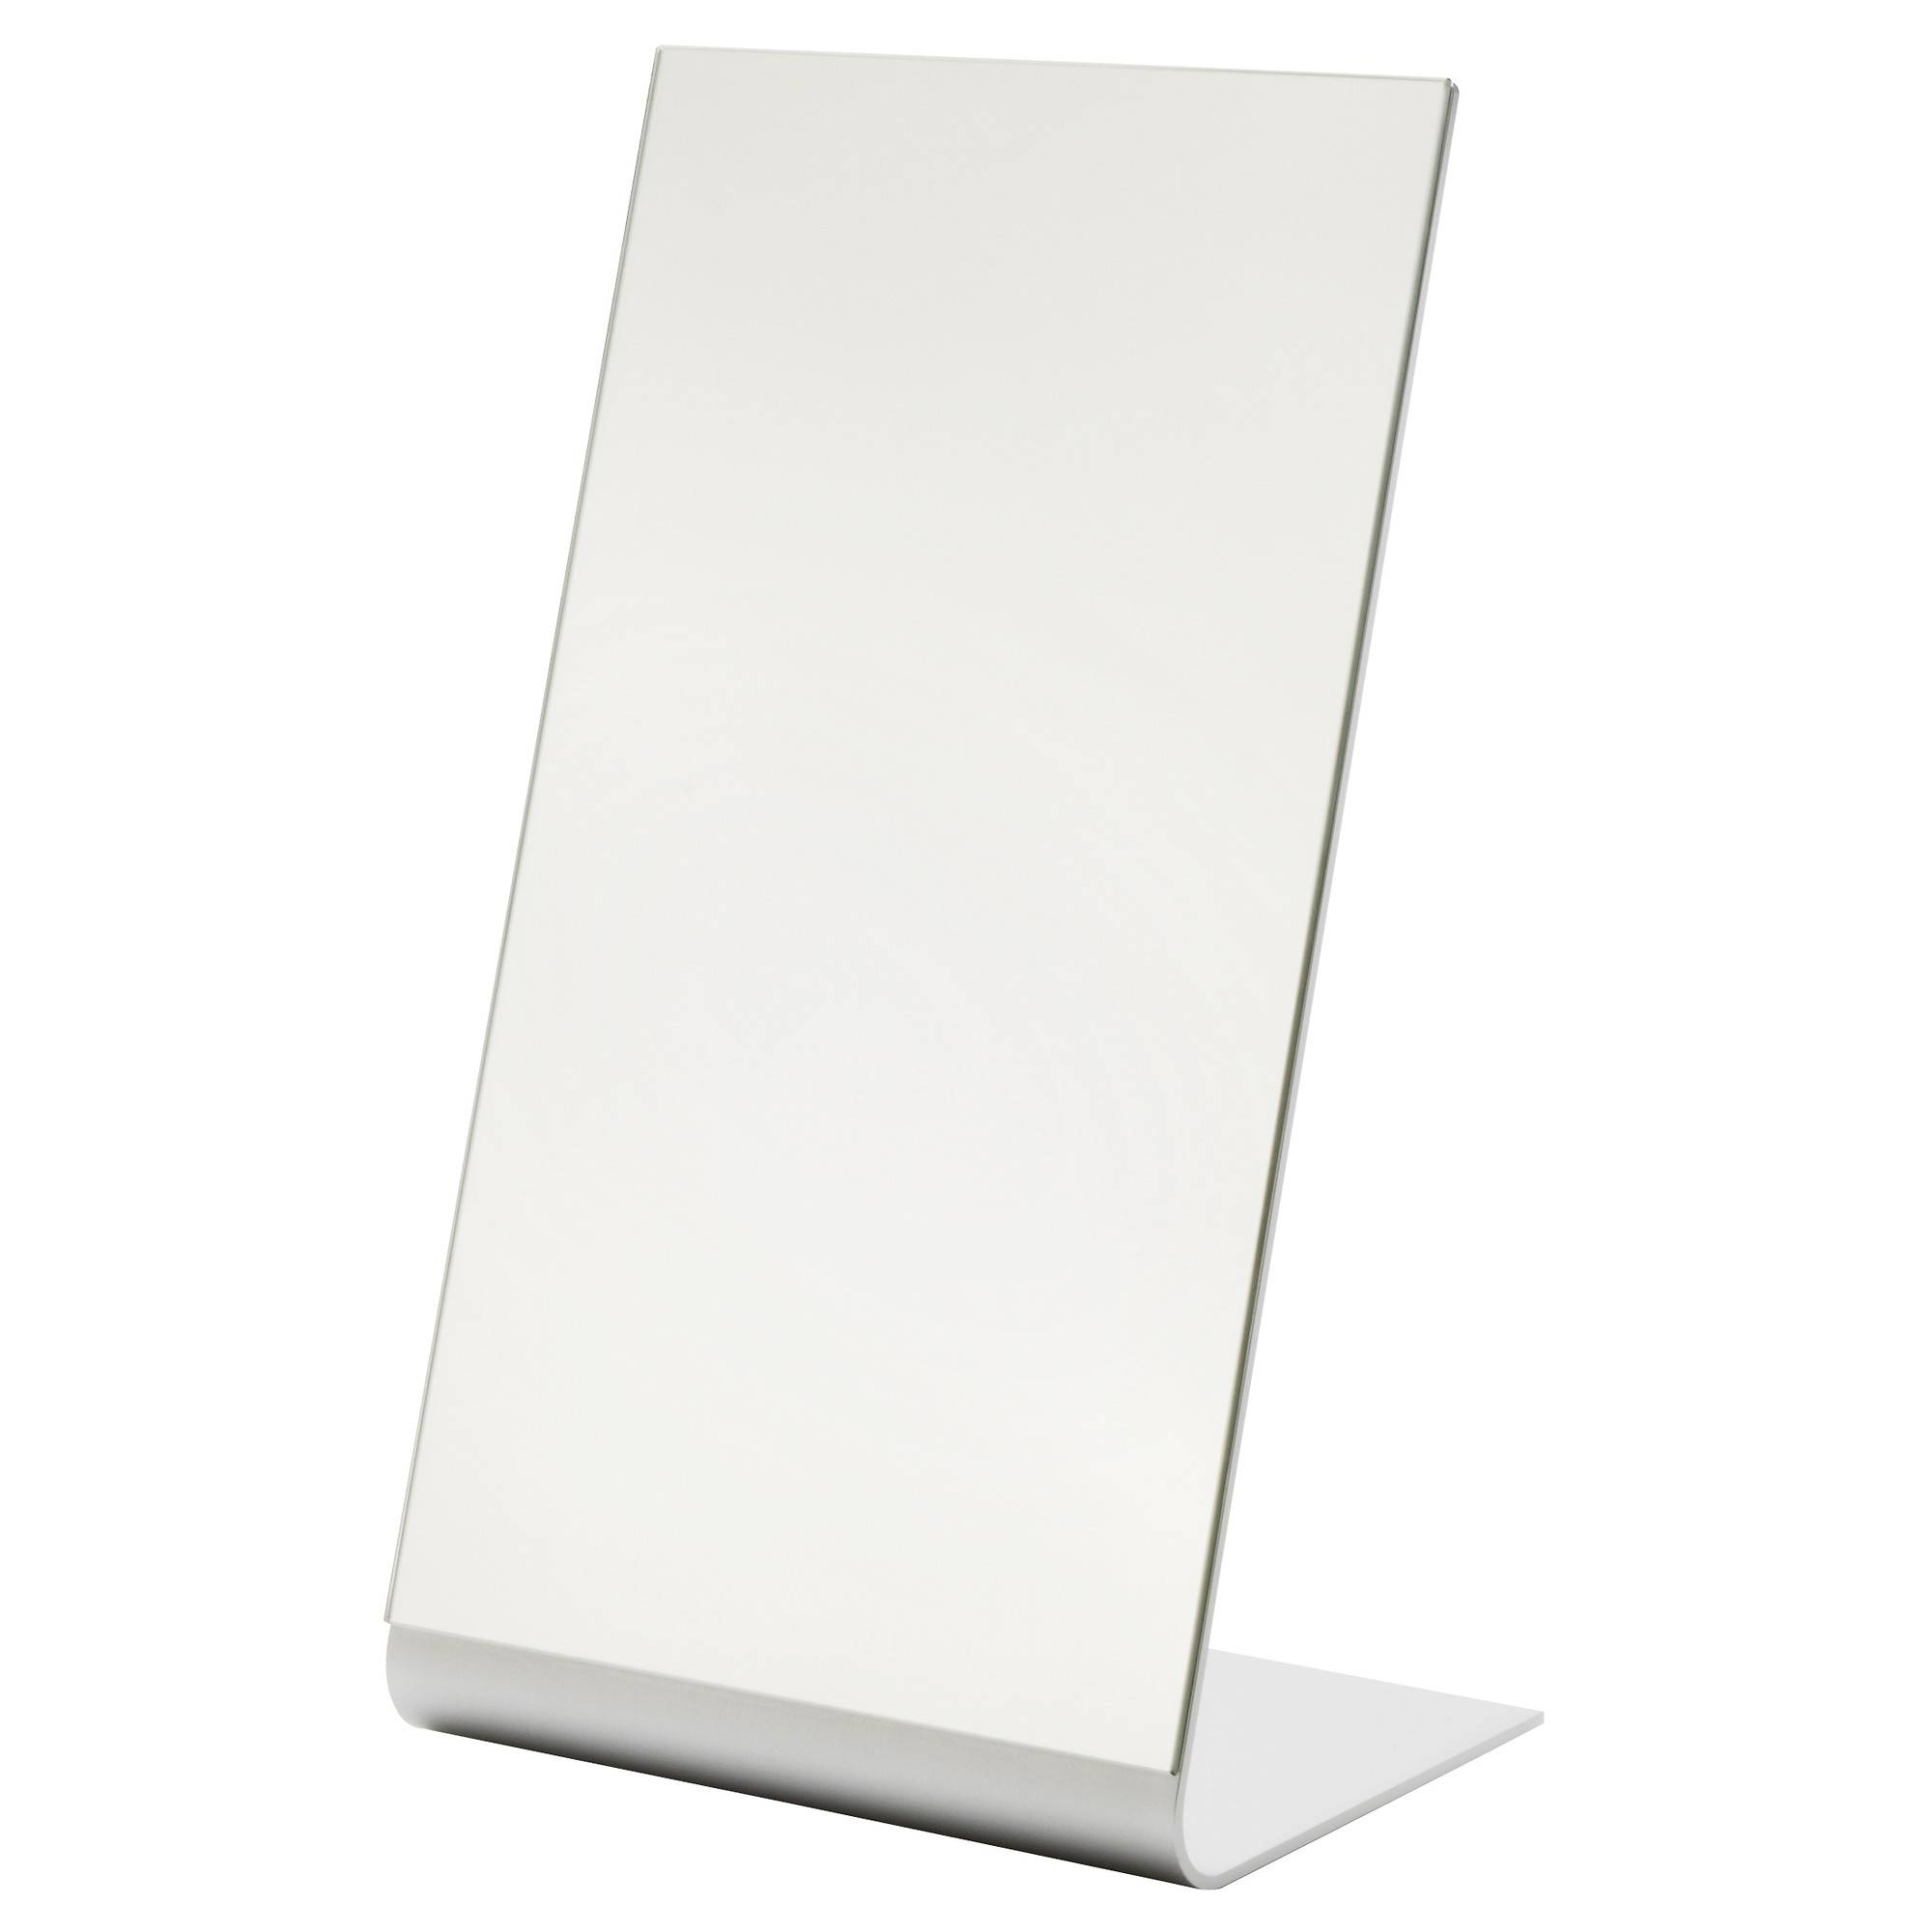 Mirrors - Free Standing Mirrors - Ikea throughout Free Standing Mirrors for Dressing Table (Image 10 of 15)